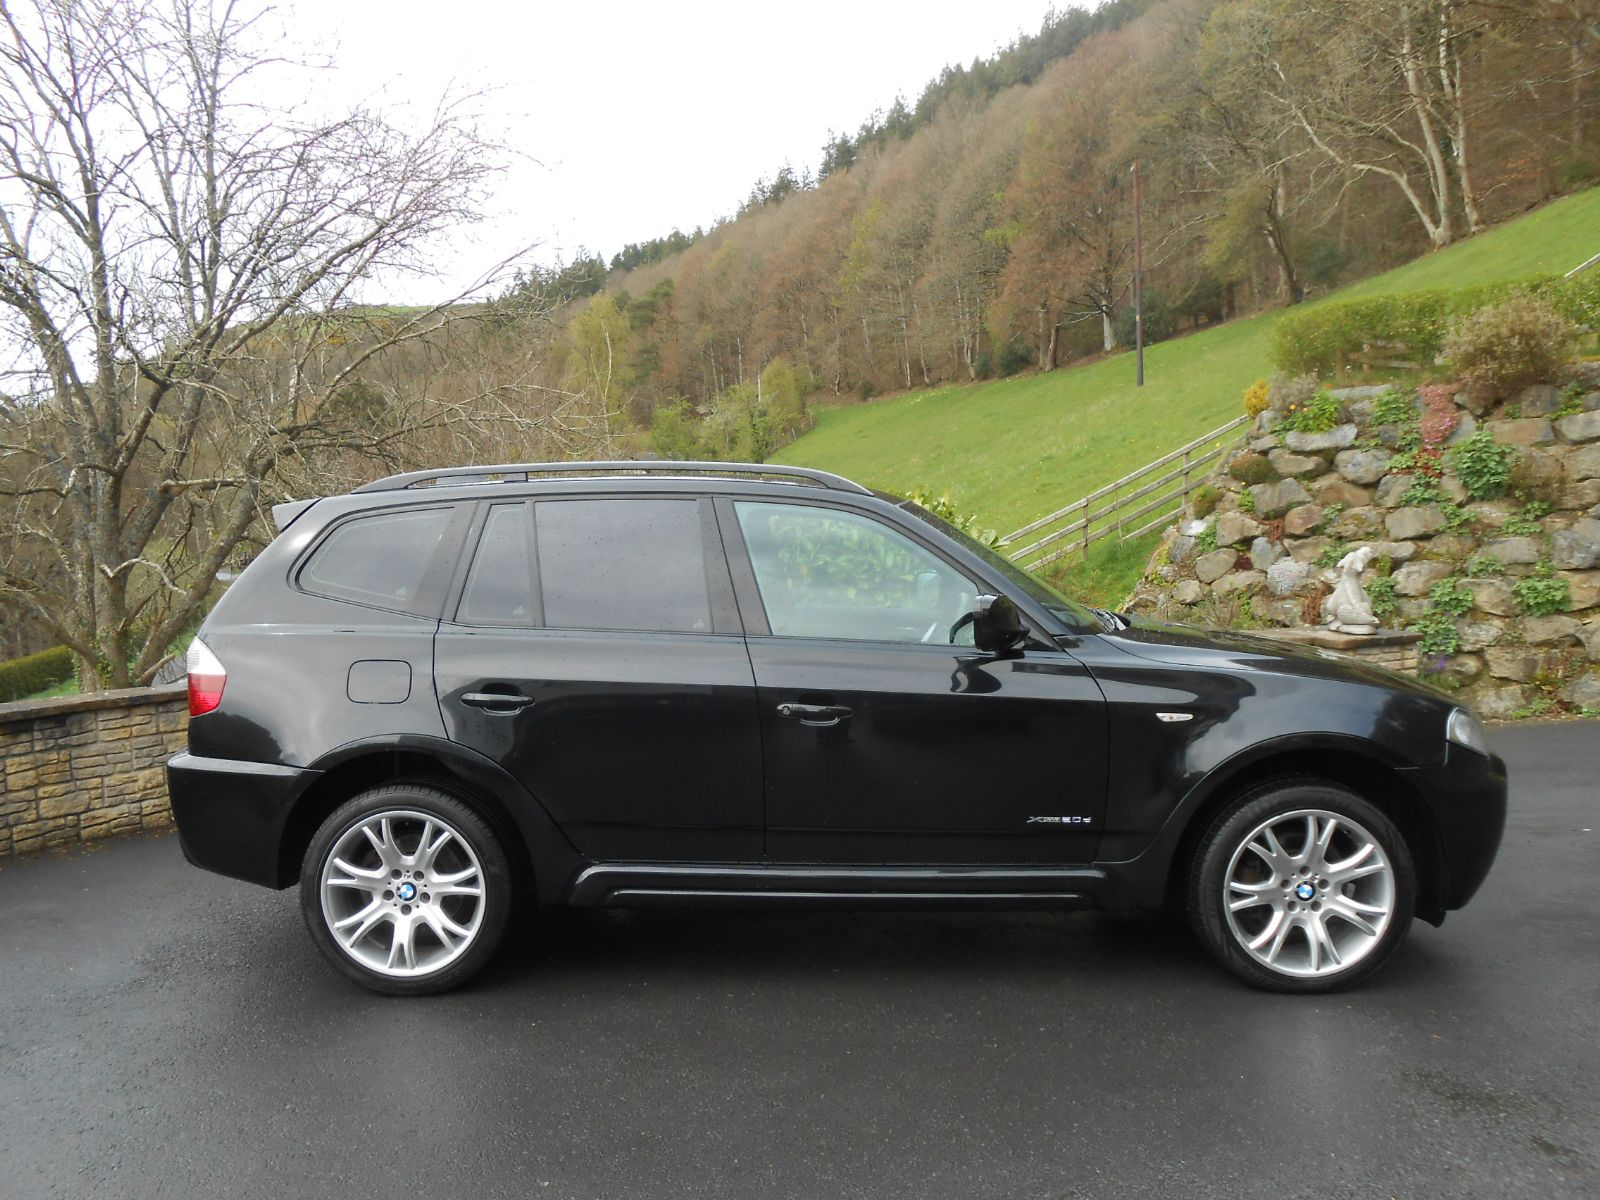 bmw x3 2 0 d xdrive m sport auto car for sale llanidloes powys mid wales kevin jones cars used. Black Bedroom Furniture Sets. Home Design Ideas